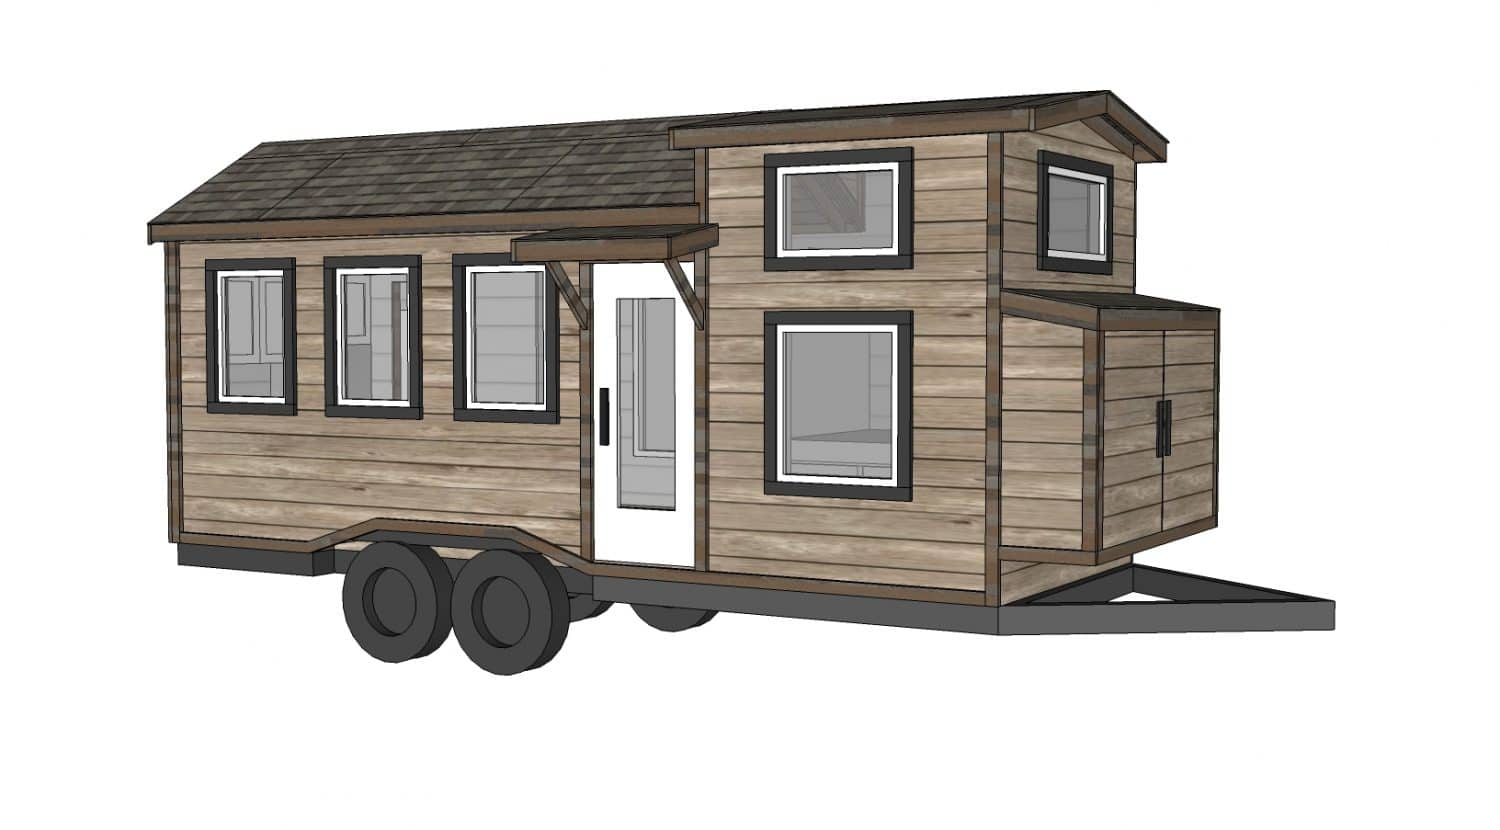 Construire sa propre tiny house plans gratuits et for Four lights tiny house plans